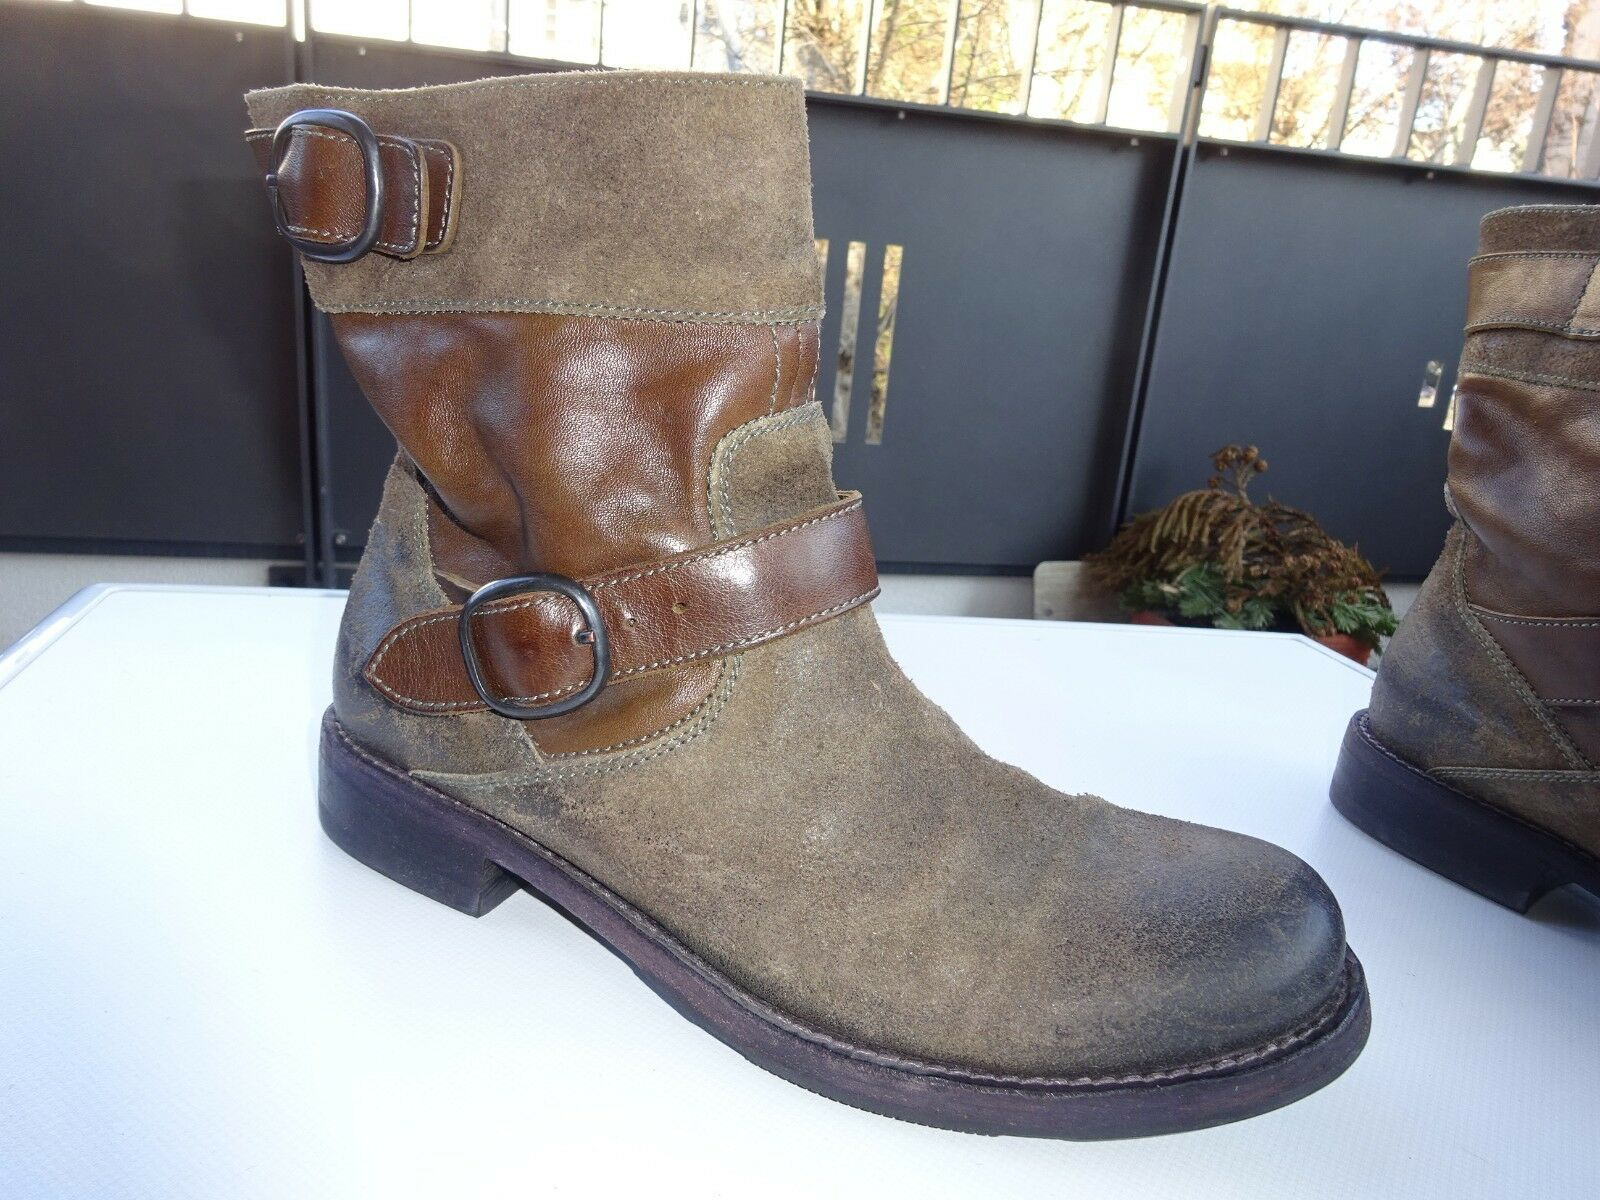 PANTANETTI by RICCARDO CARTILLONE Stiefeletten Wildleder Vintage  Gr.38 TOP